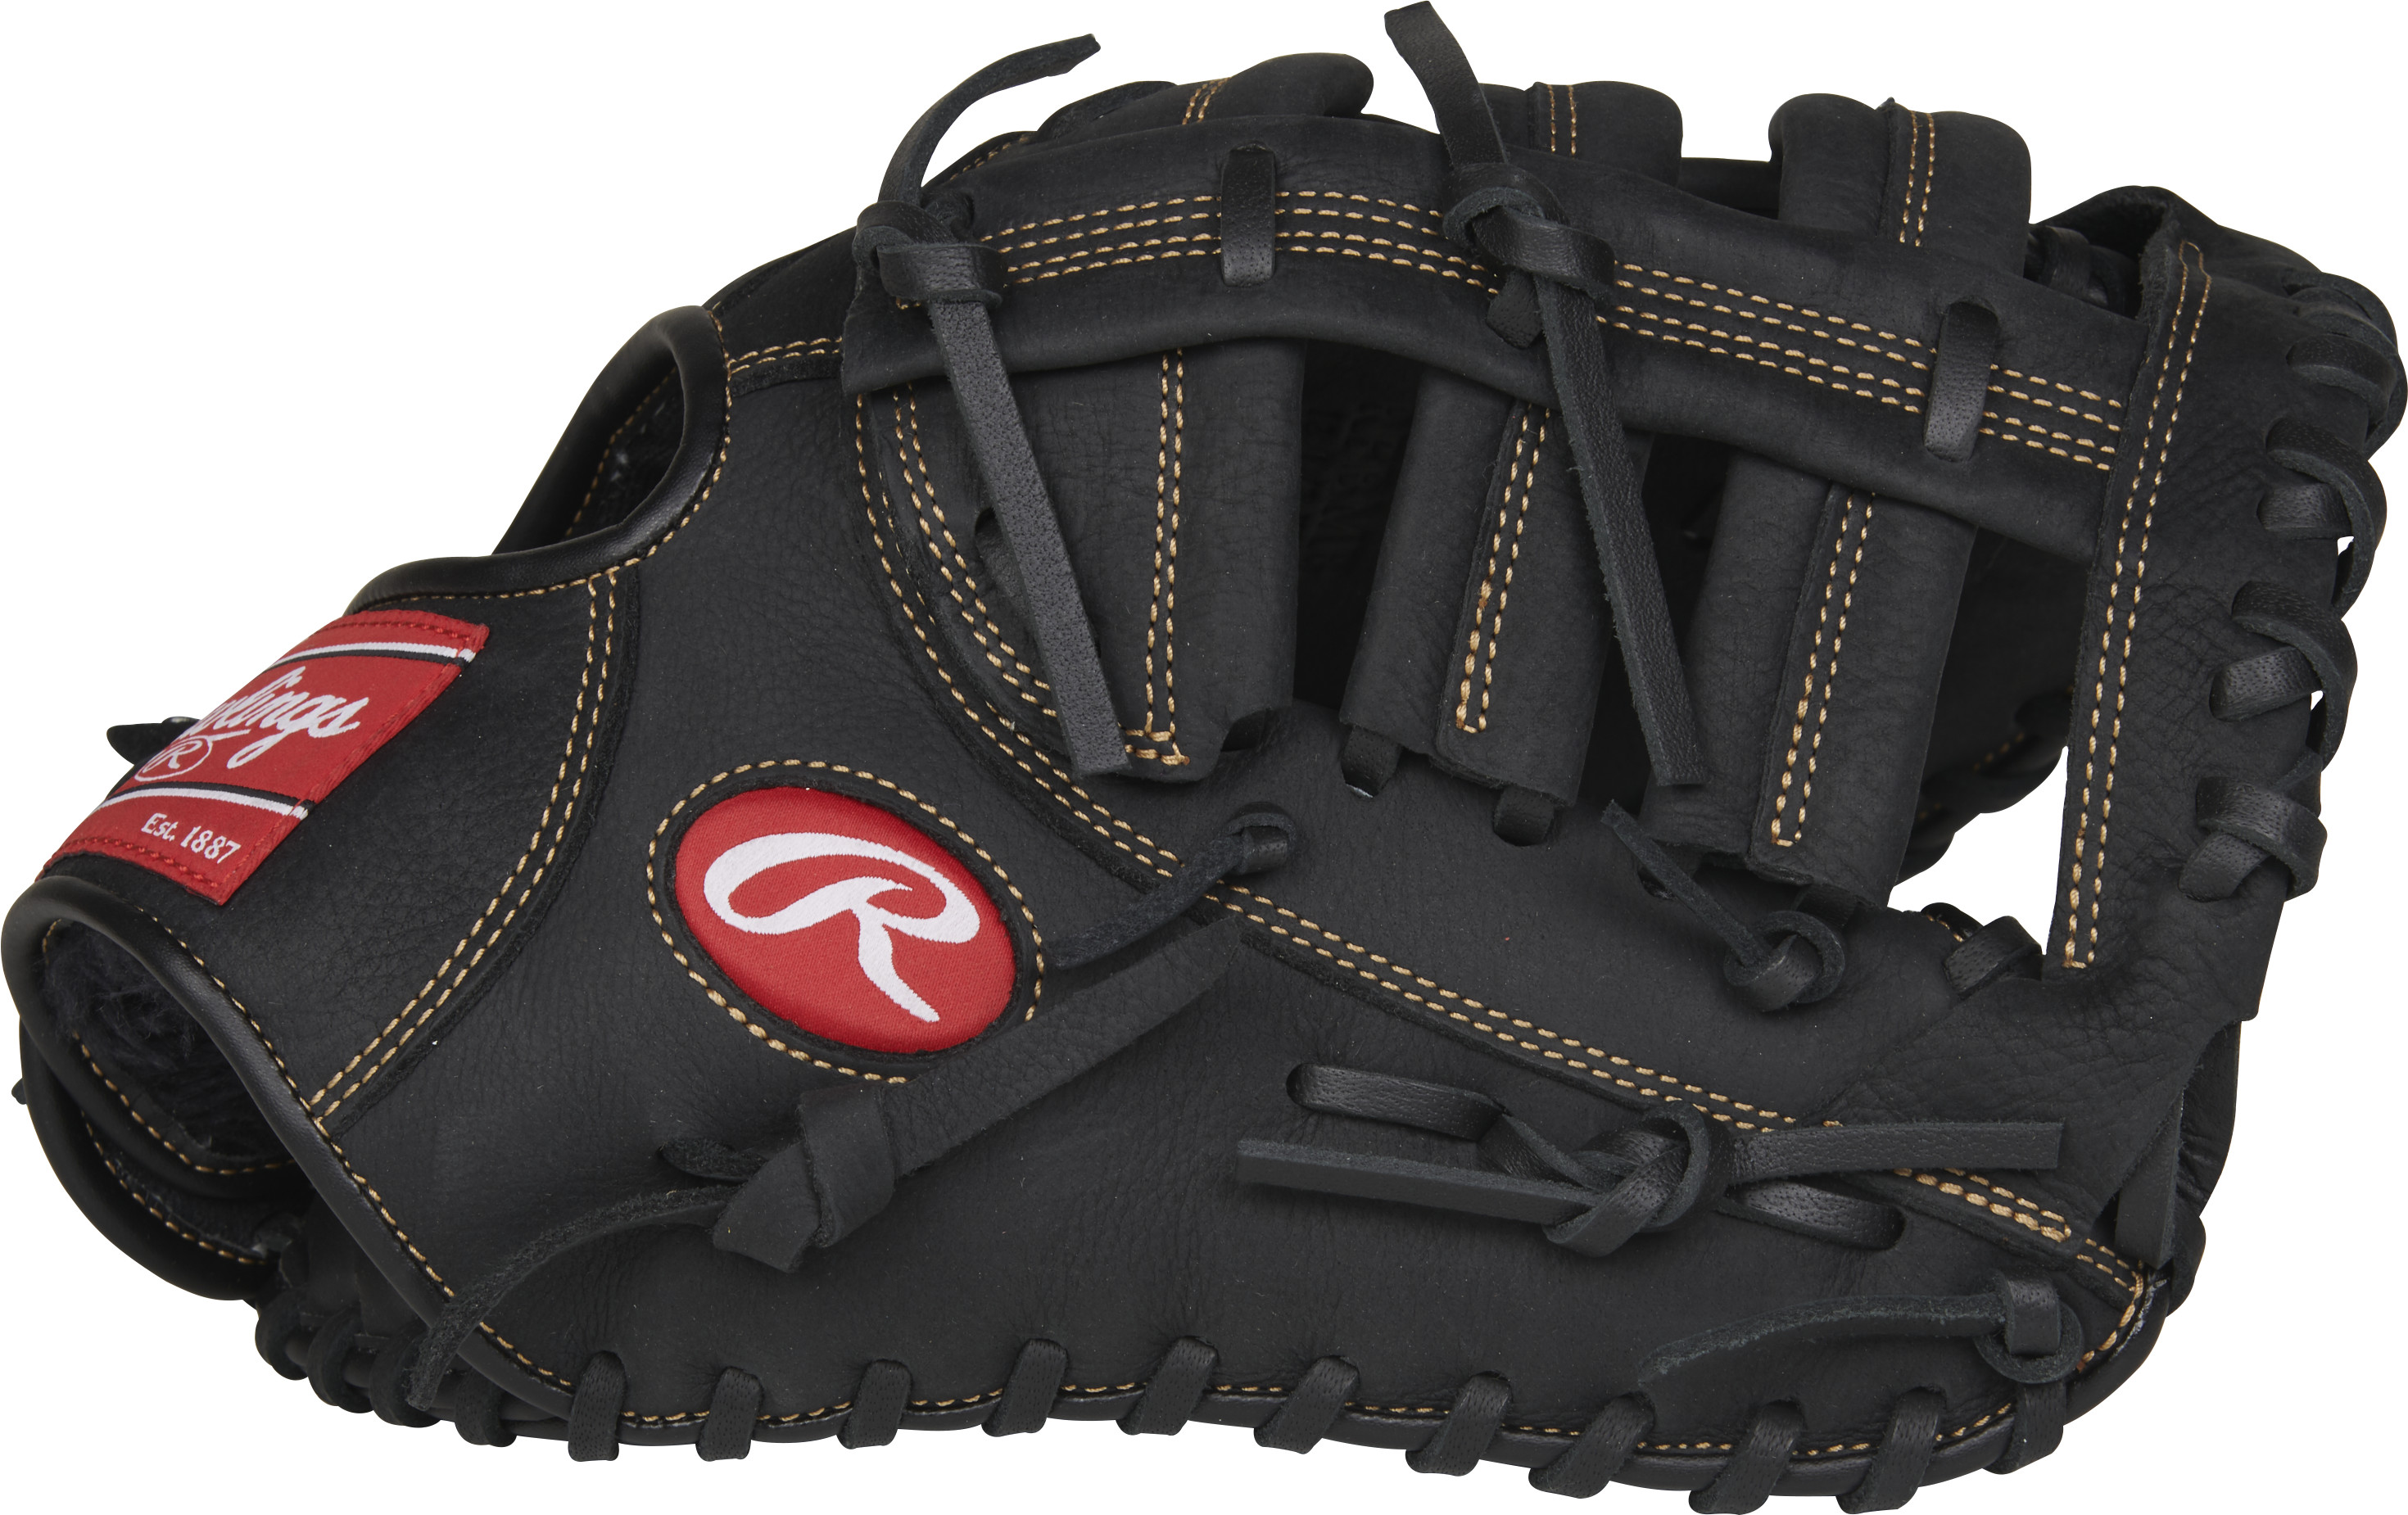 http://www.bestbatdeals.com/images/gloves/rawlings/RFBMB-3.jpg